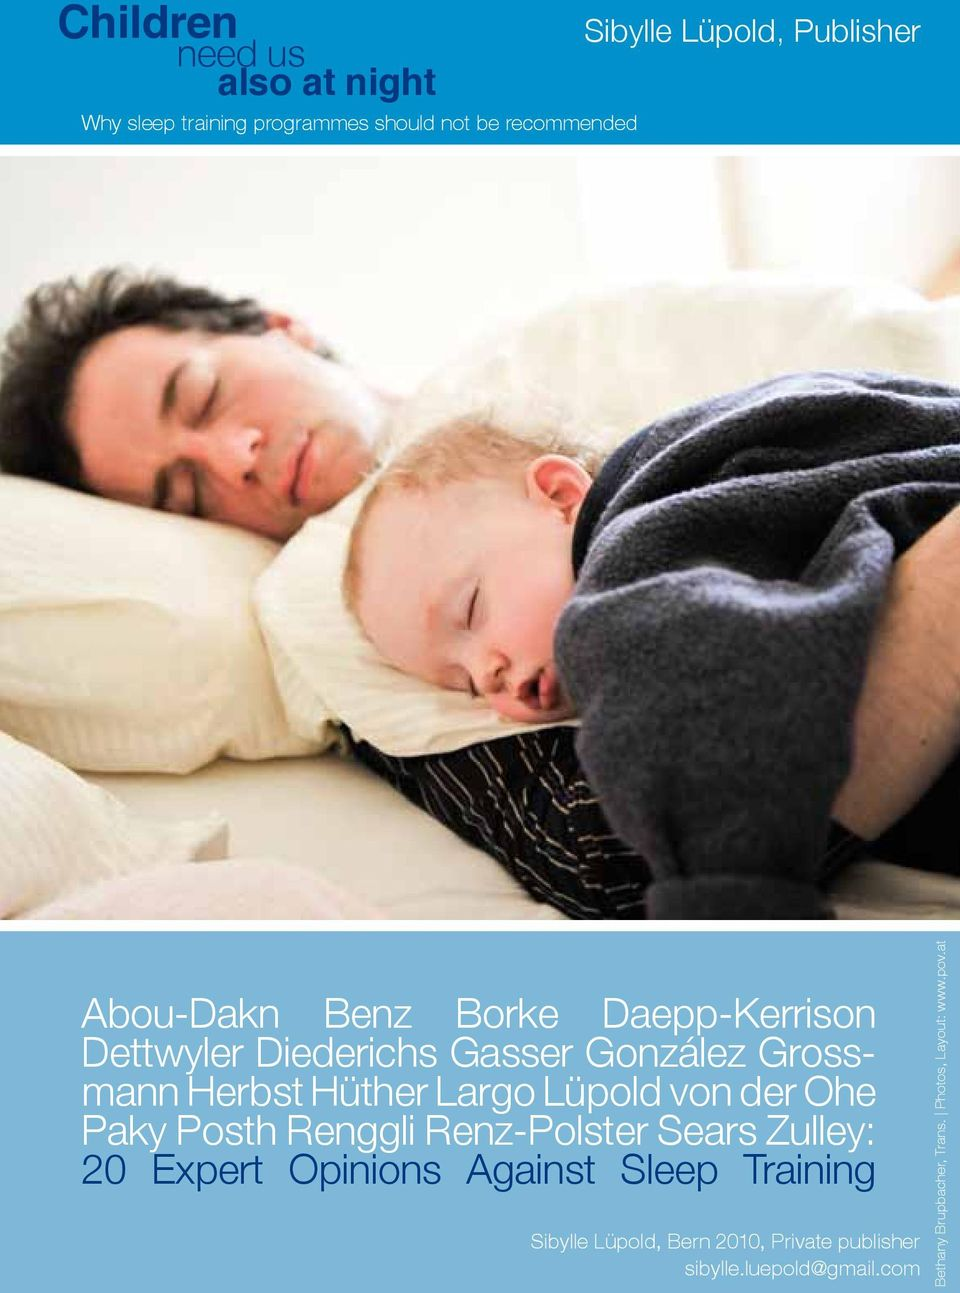 von der Ohe Paky Posth Renggli Renz-Polster Sears Zulley: 20 Expert Opinions Against Sleep Training Sibylle